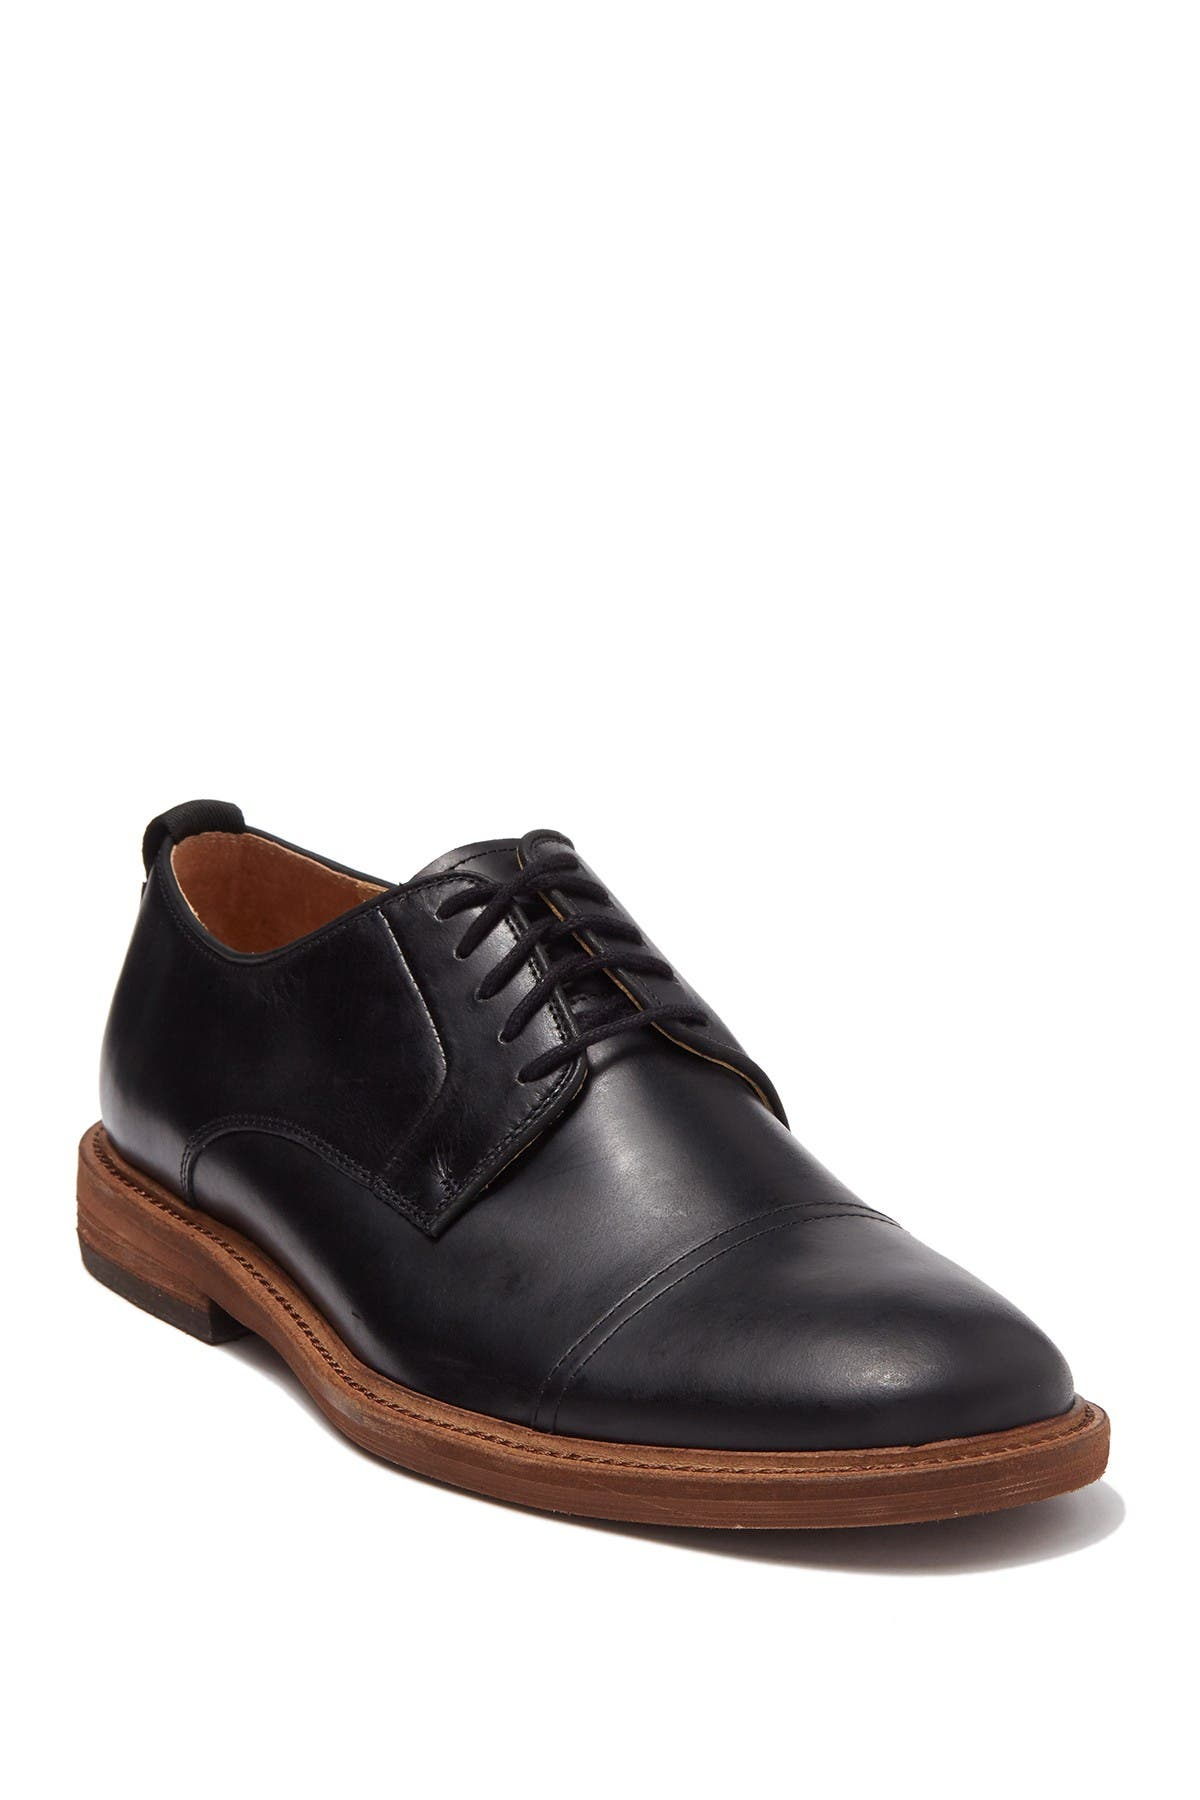 Image of Warfield & Grand Childs Leather Cap Toe Derby